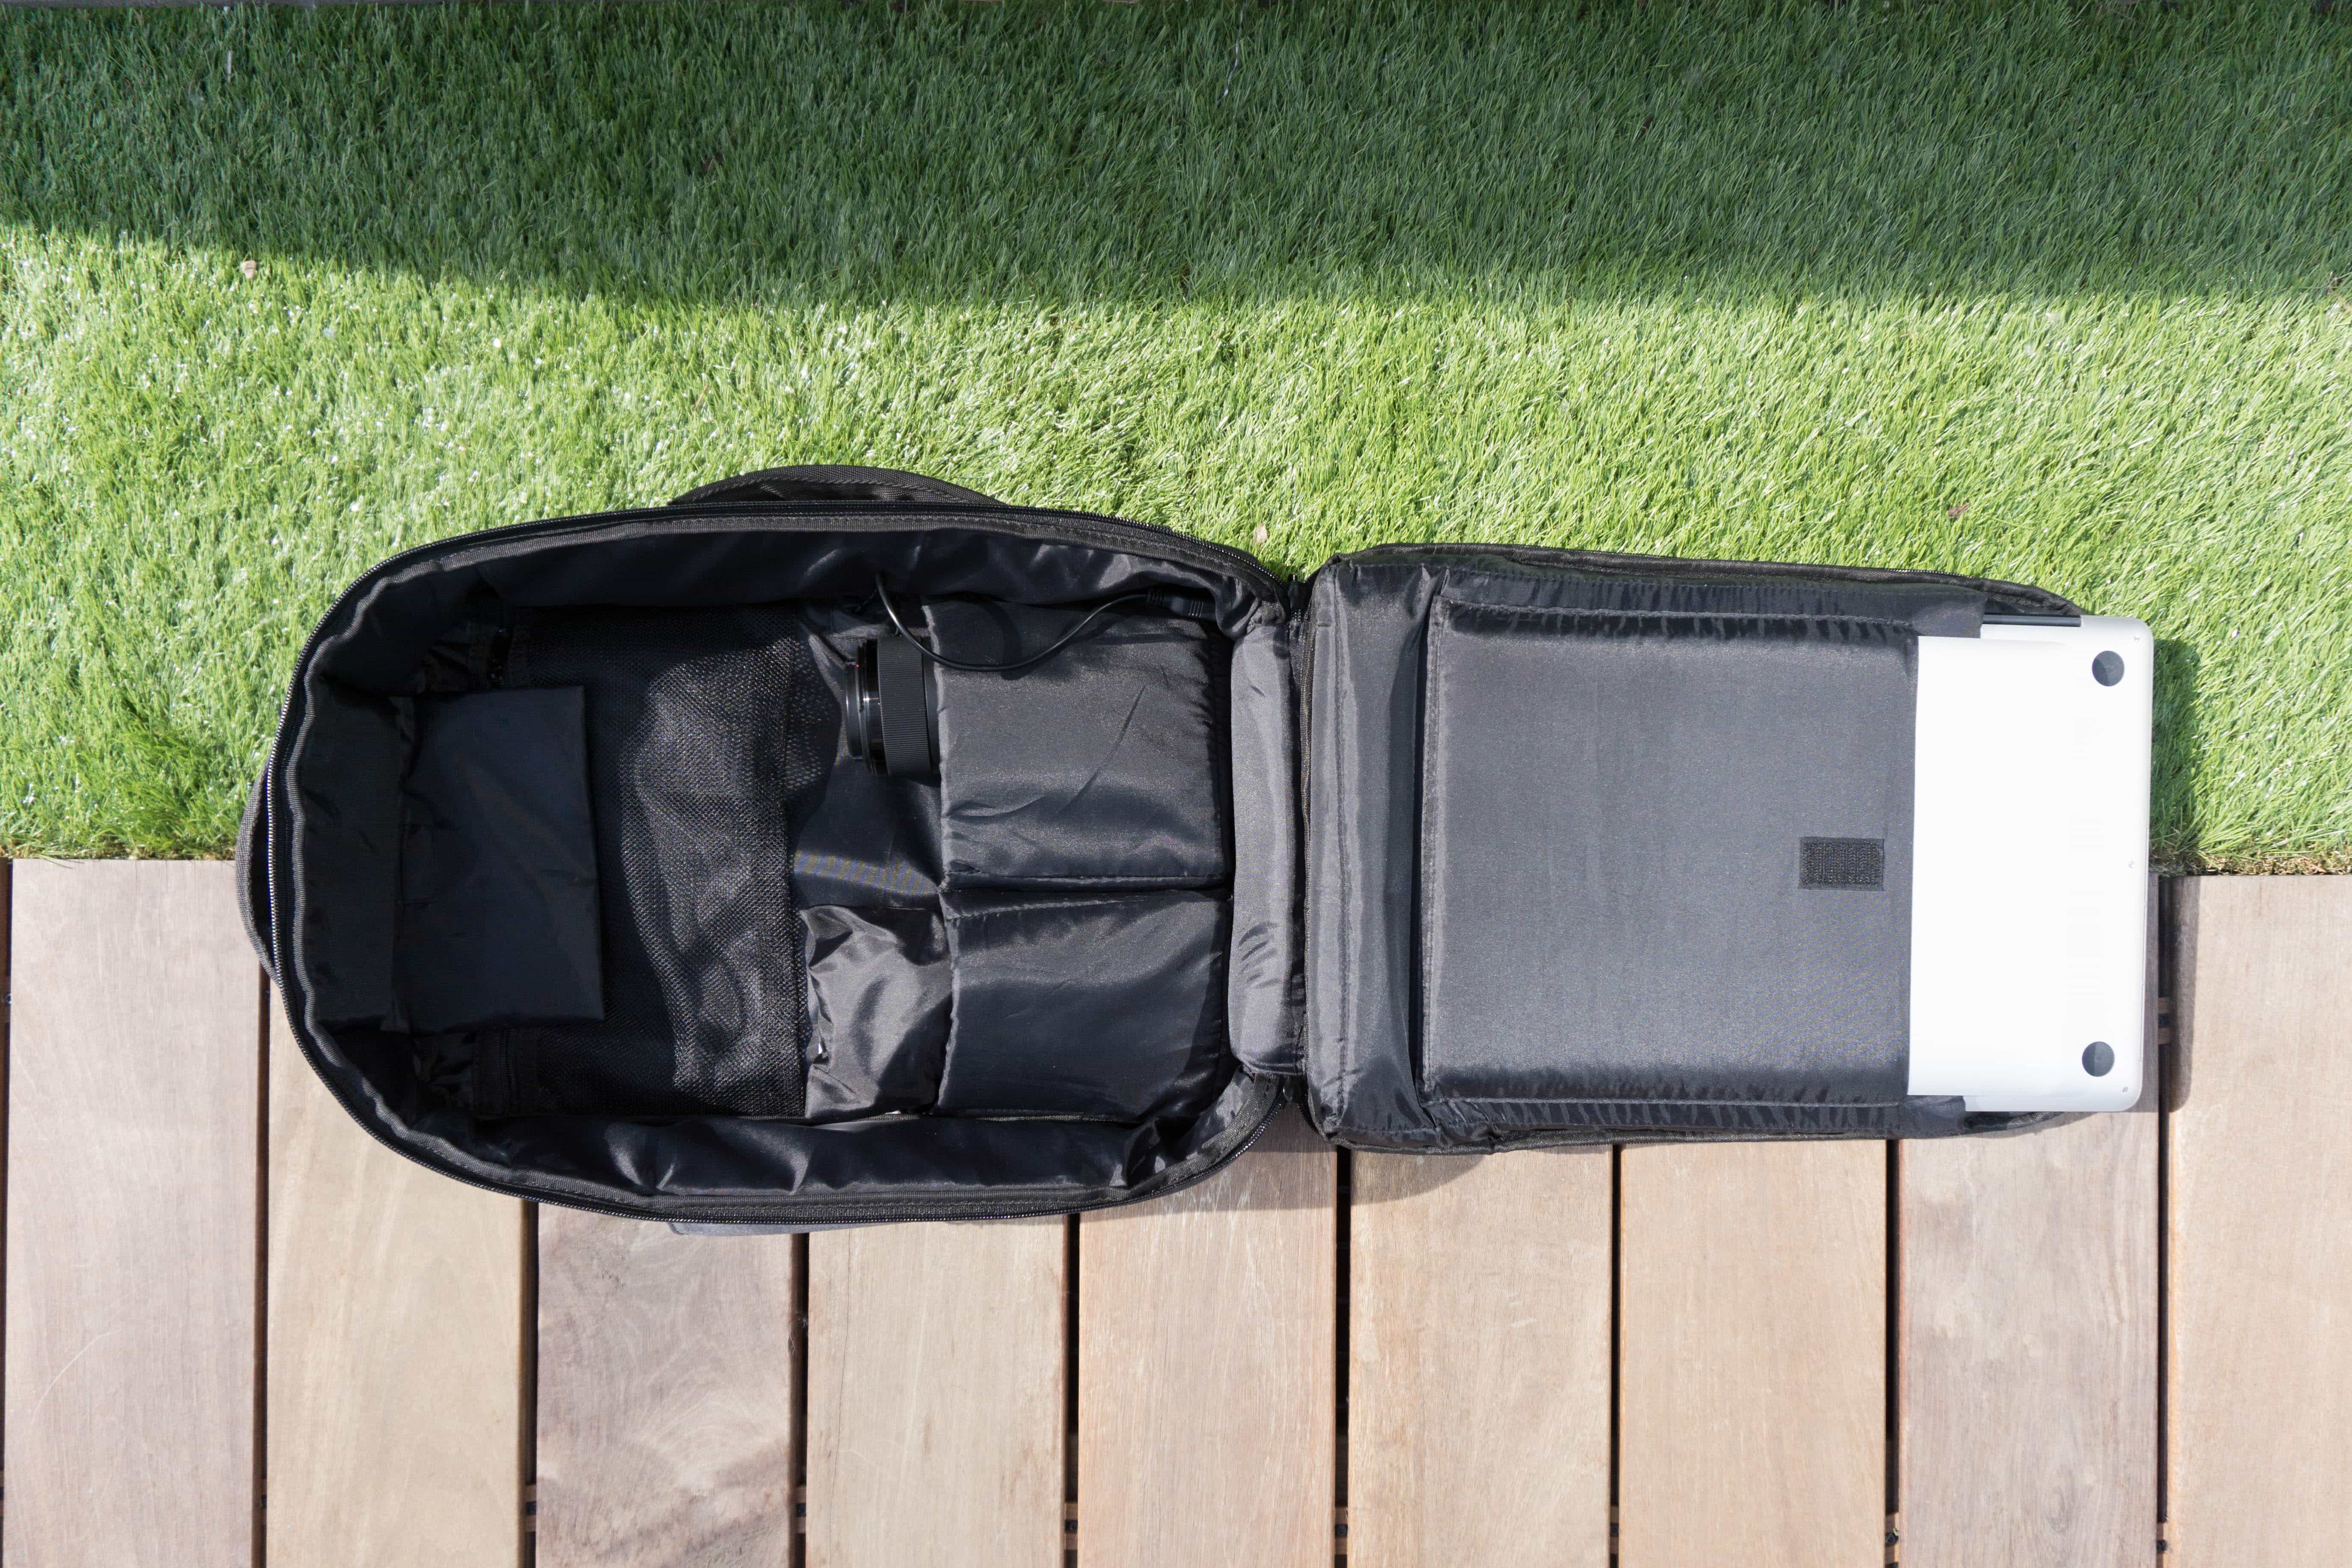 Standard Luggage Co. Daily Backpack Rear Compartment